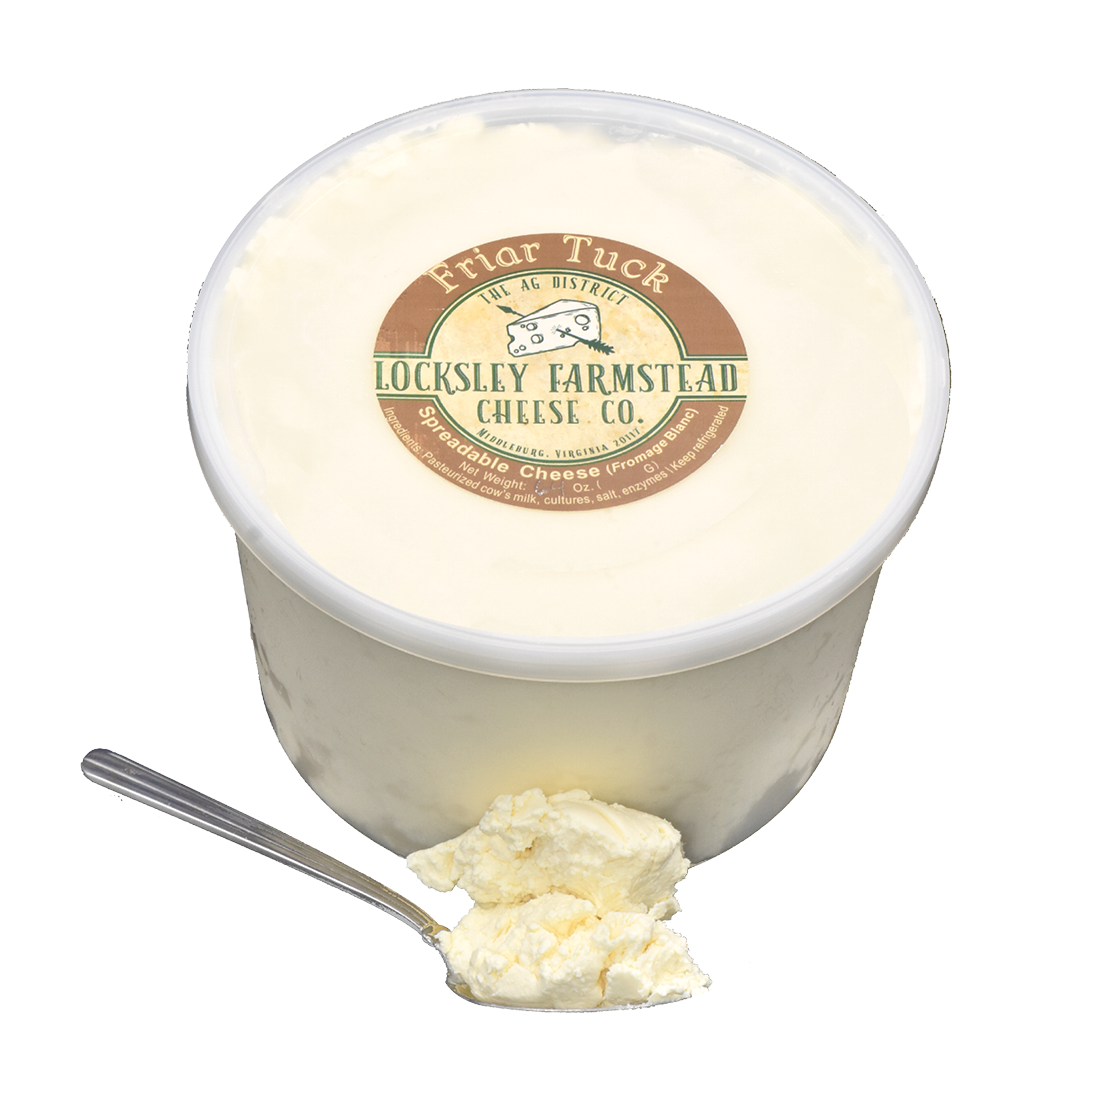 Cheese Product Images for Website5.png